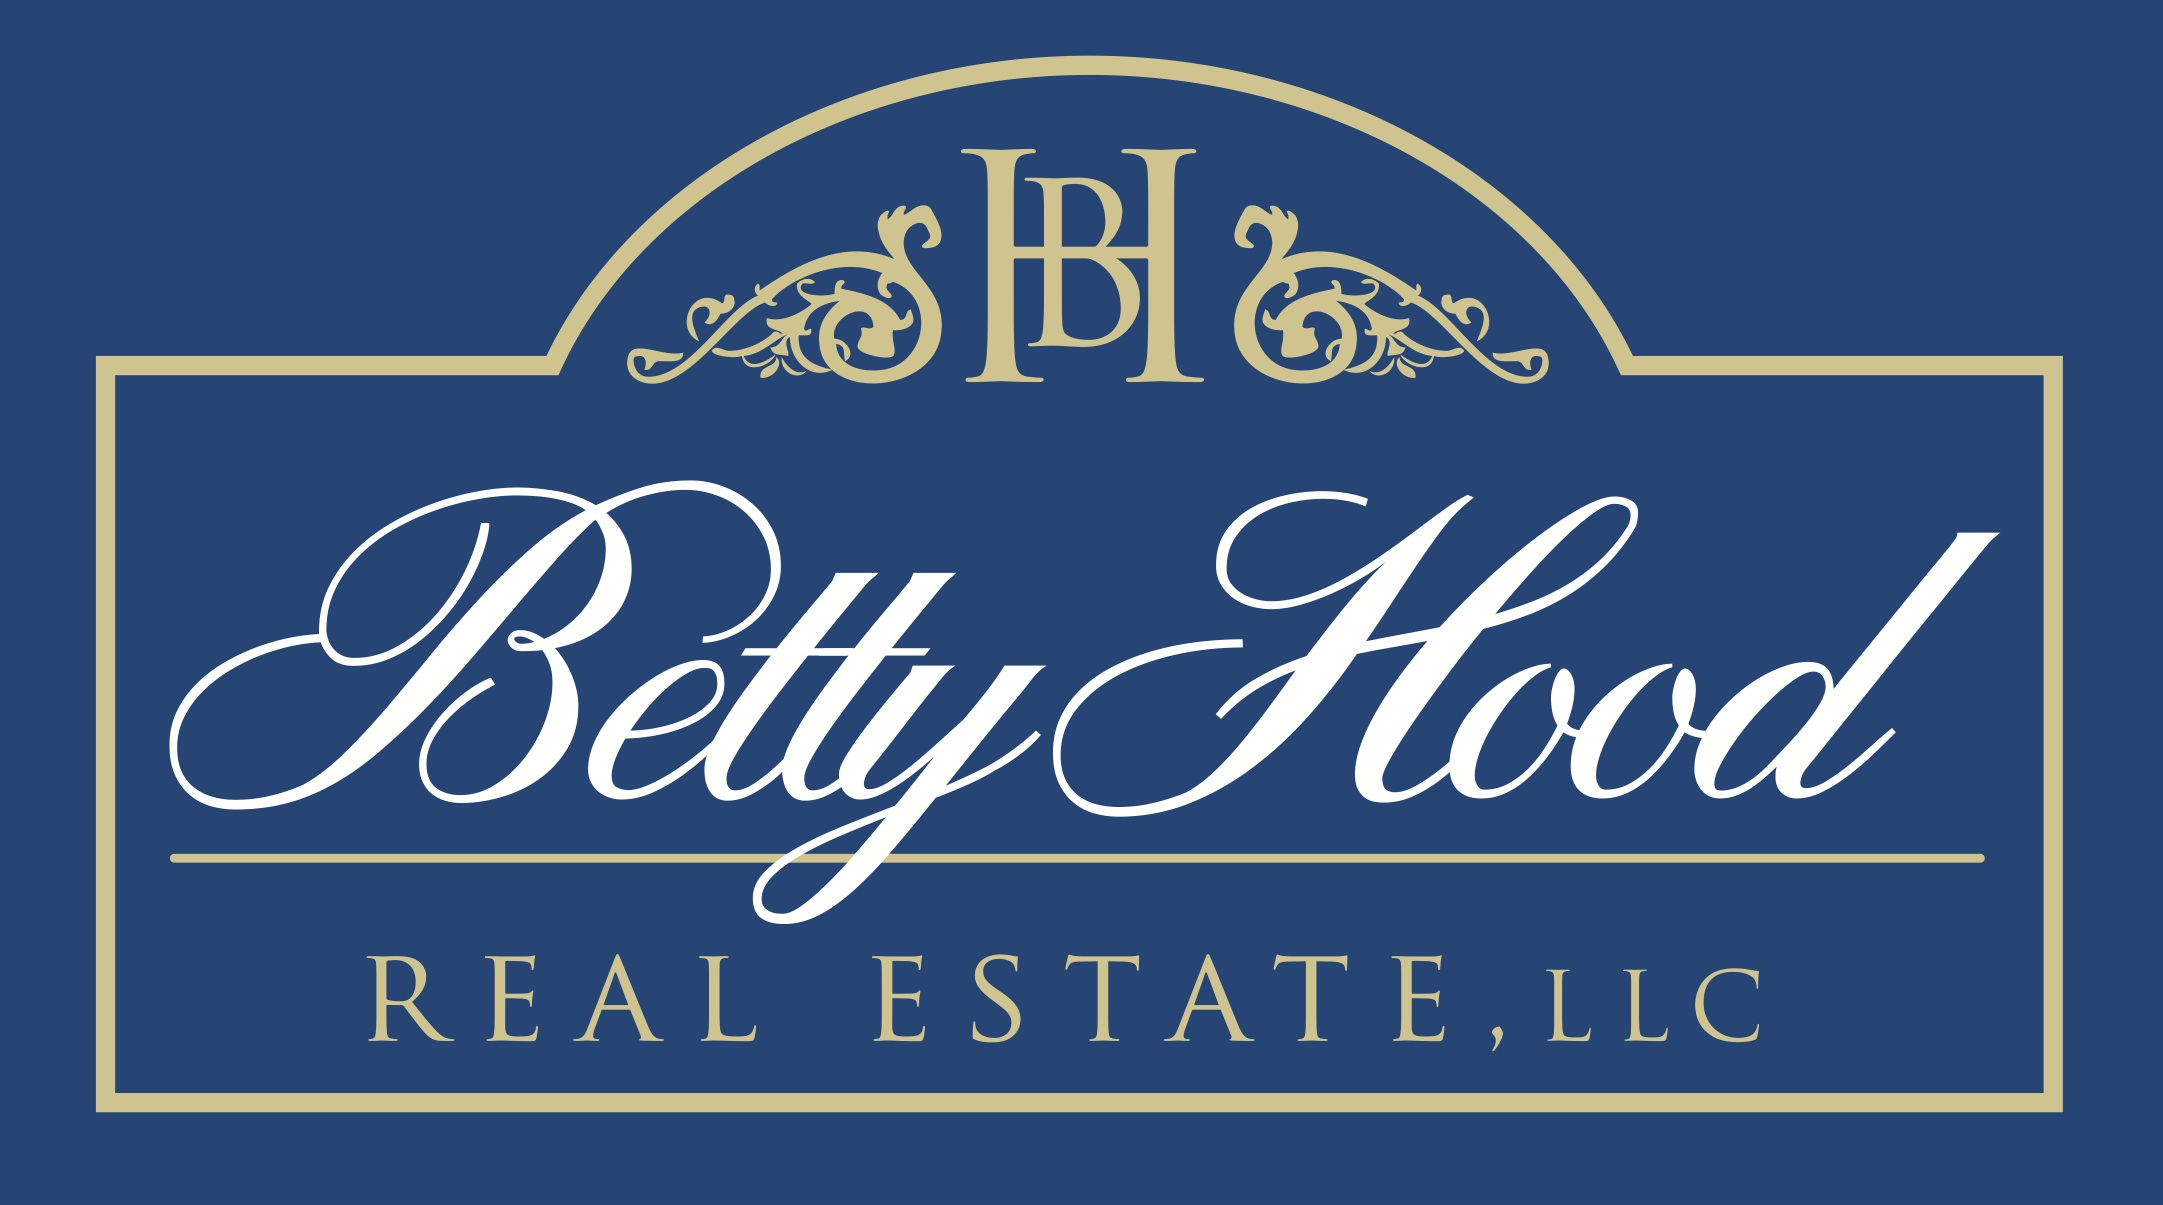 Betty-Hood-Real-Estate